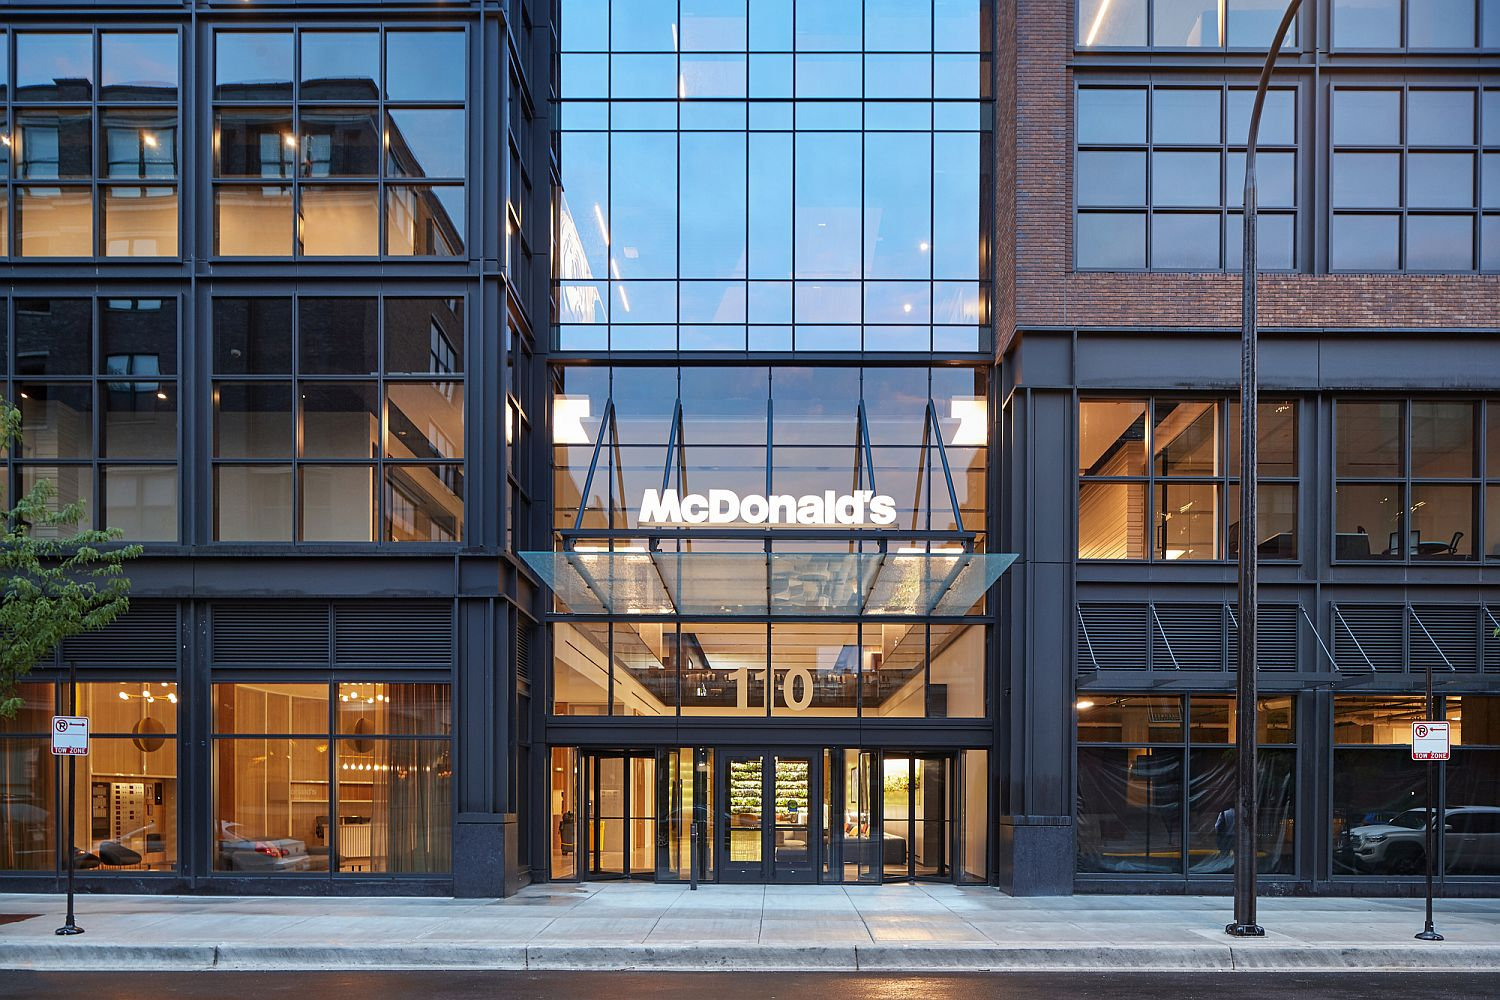 Stunning new McDonald's Global HQ building in Chicago